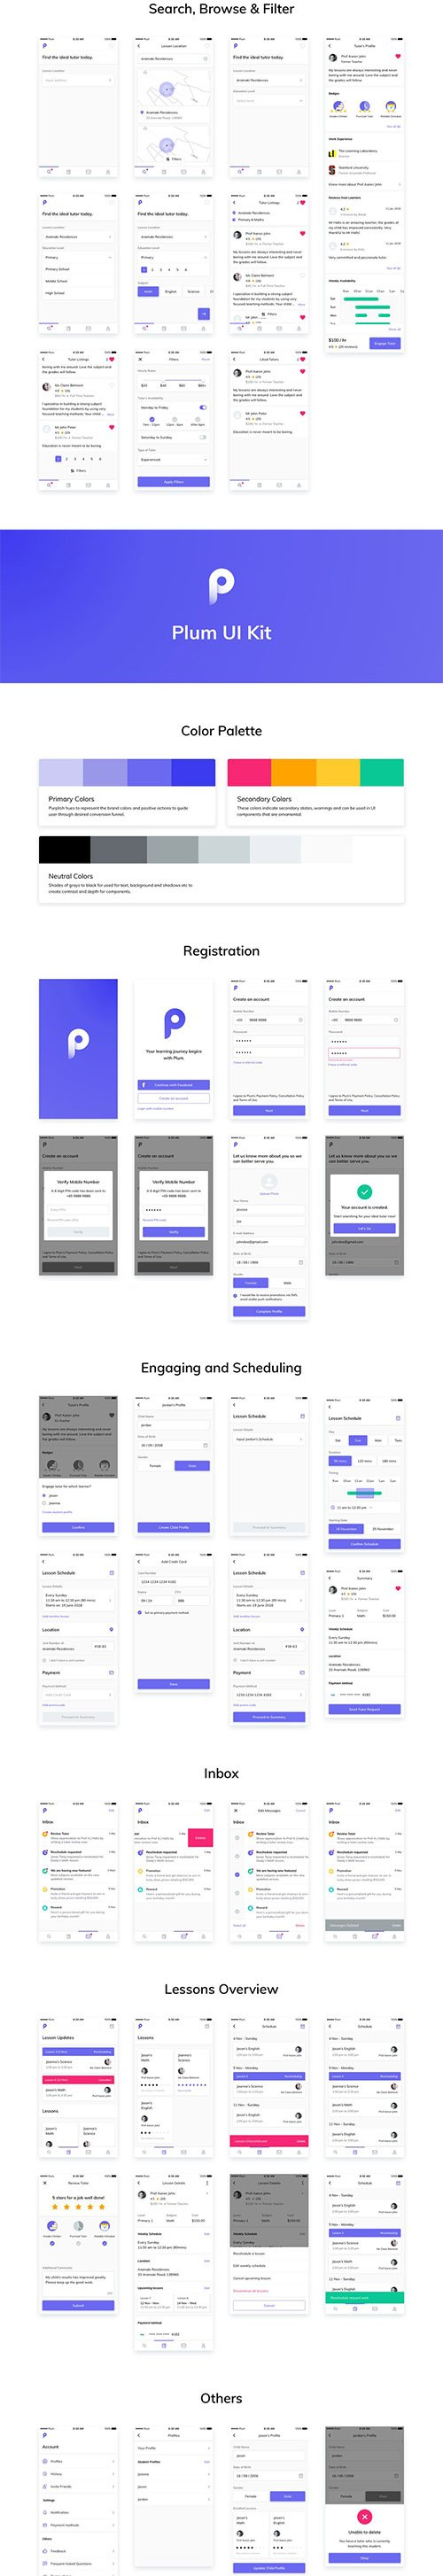 Plum iOS UI Kit